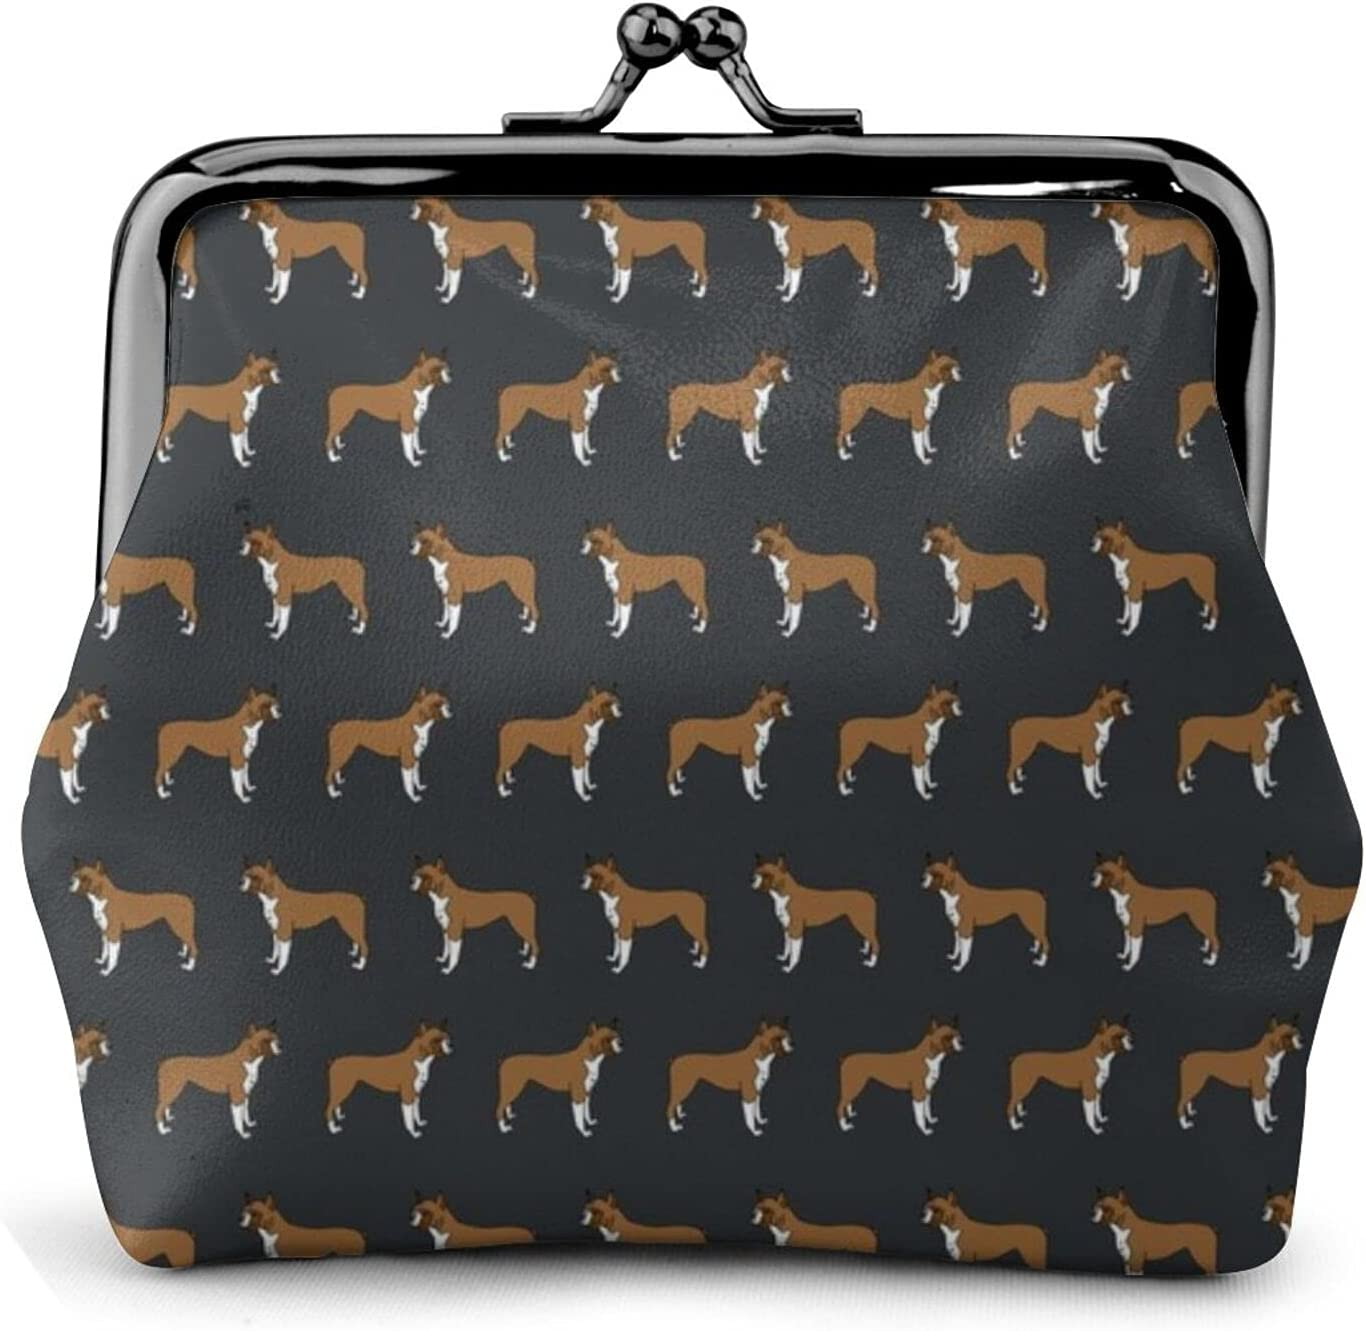 Boxer Boxers Dog 1111 Coin Purse Retro Money Pouch with Kiss-lock Buckle Small Wallet for Women and Girls